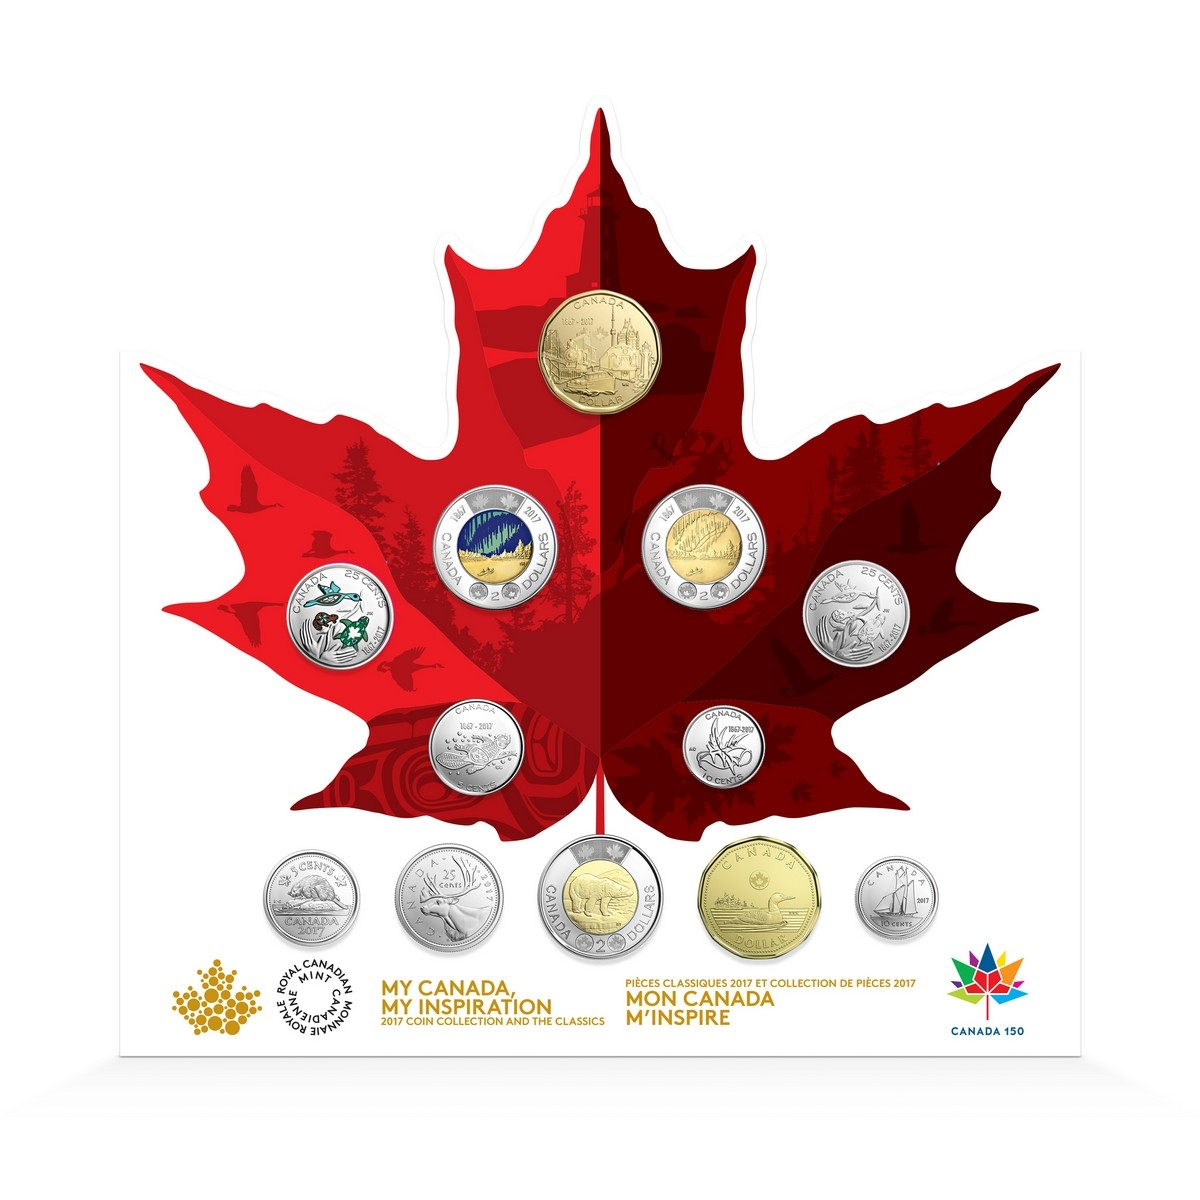 Canada 2017 5 Cent Coin 150 Years Celebration Our Passion Living Treadition.